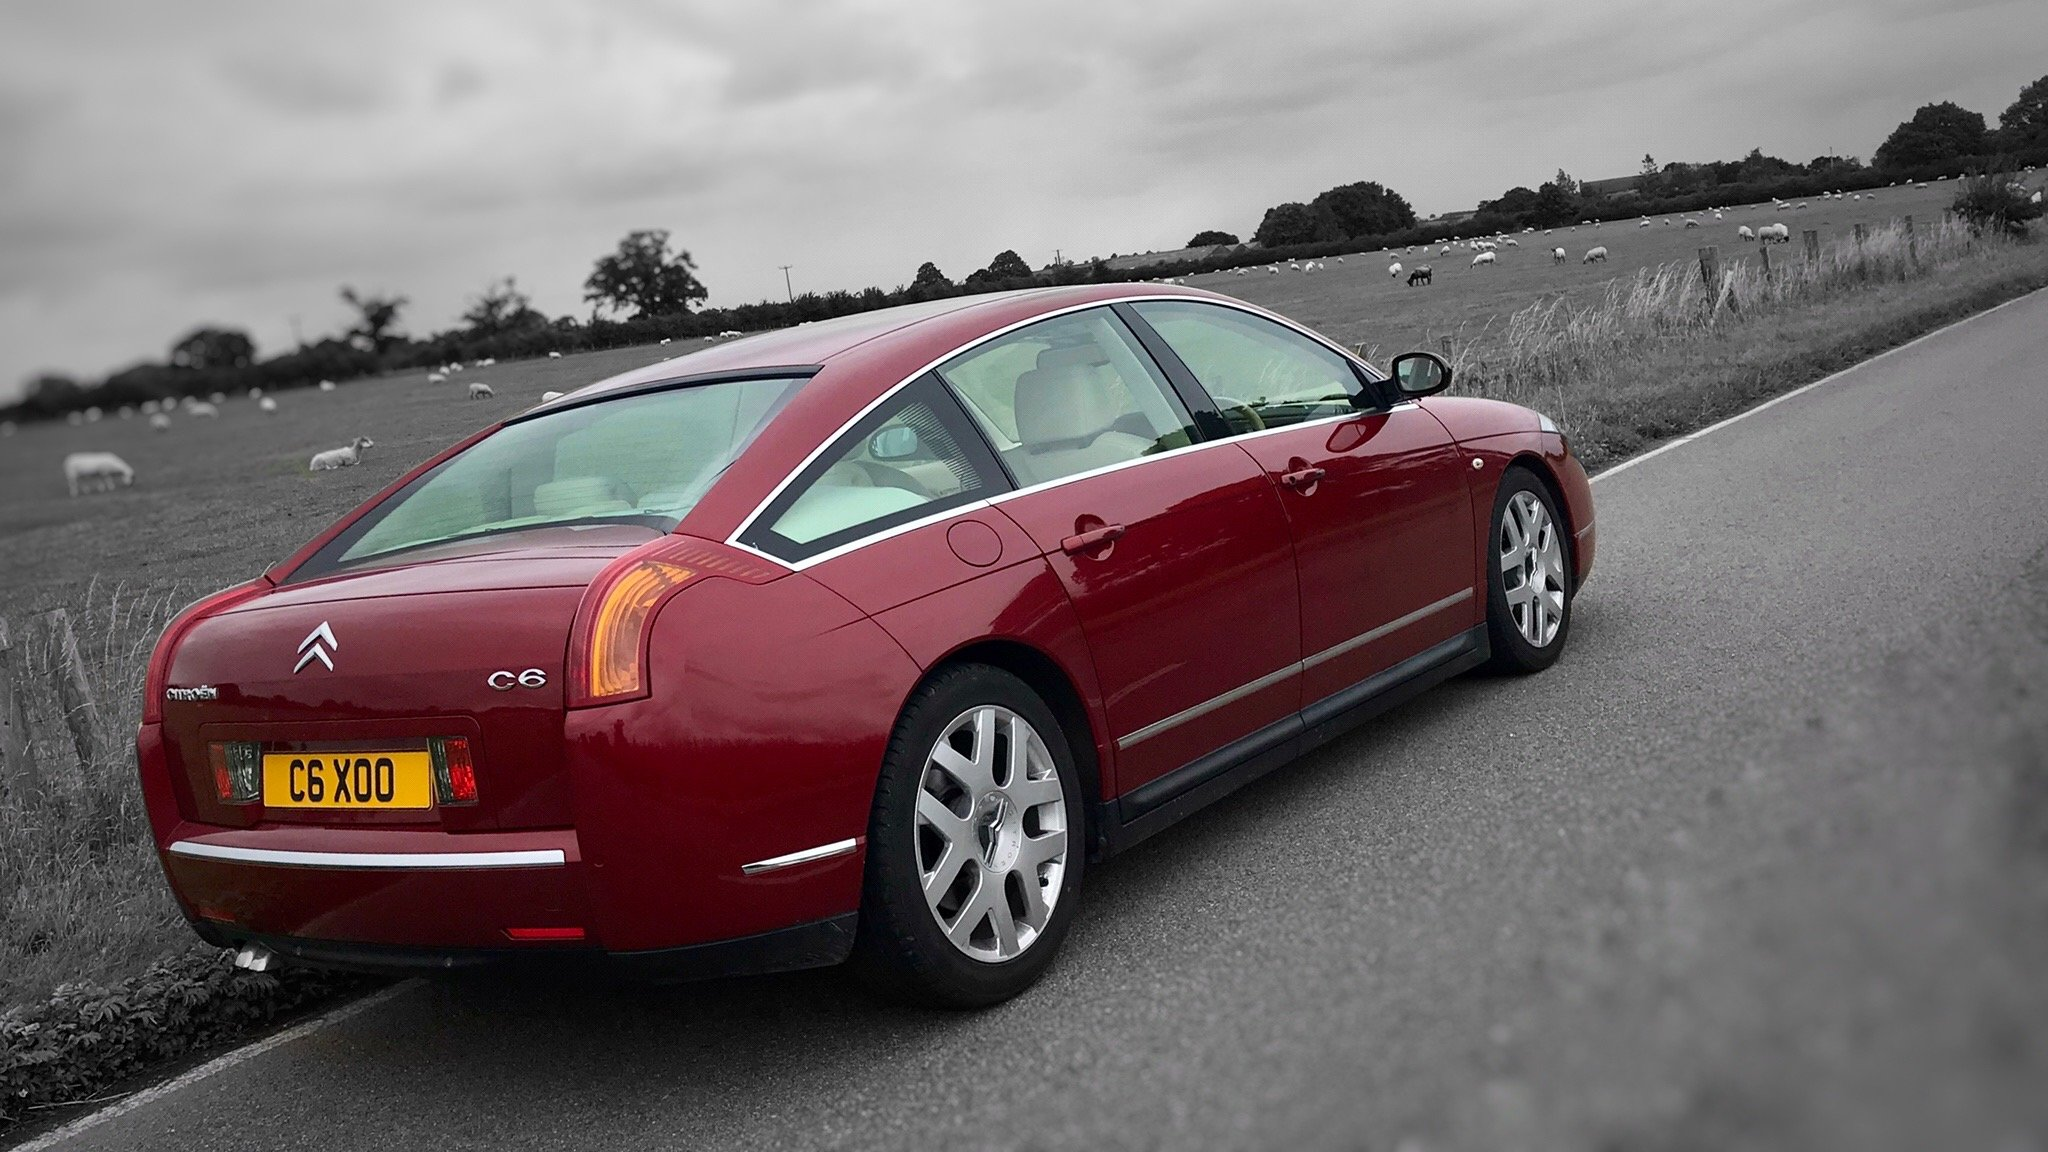 2008 Immaculate Citroen C6, FSH, Lounge Pack, Ultra Low Mileage SOLD (picture 3 of 6)